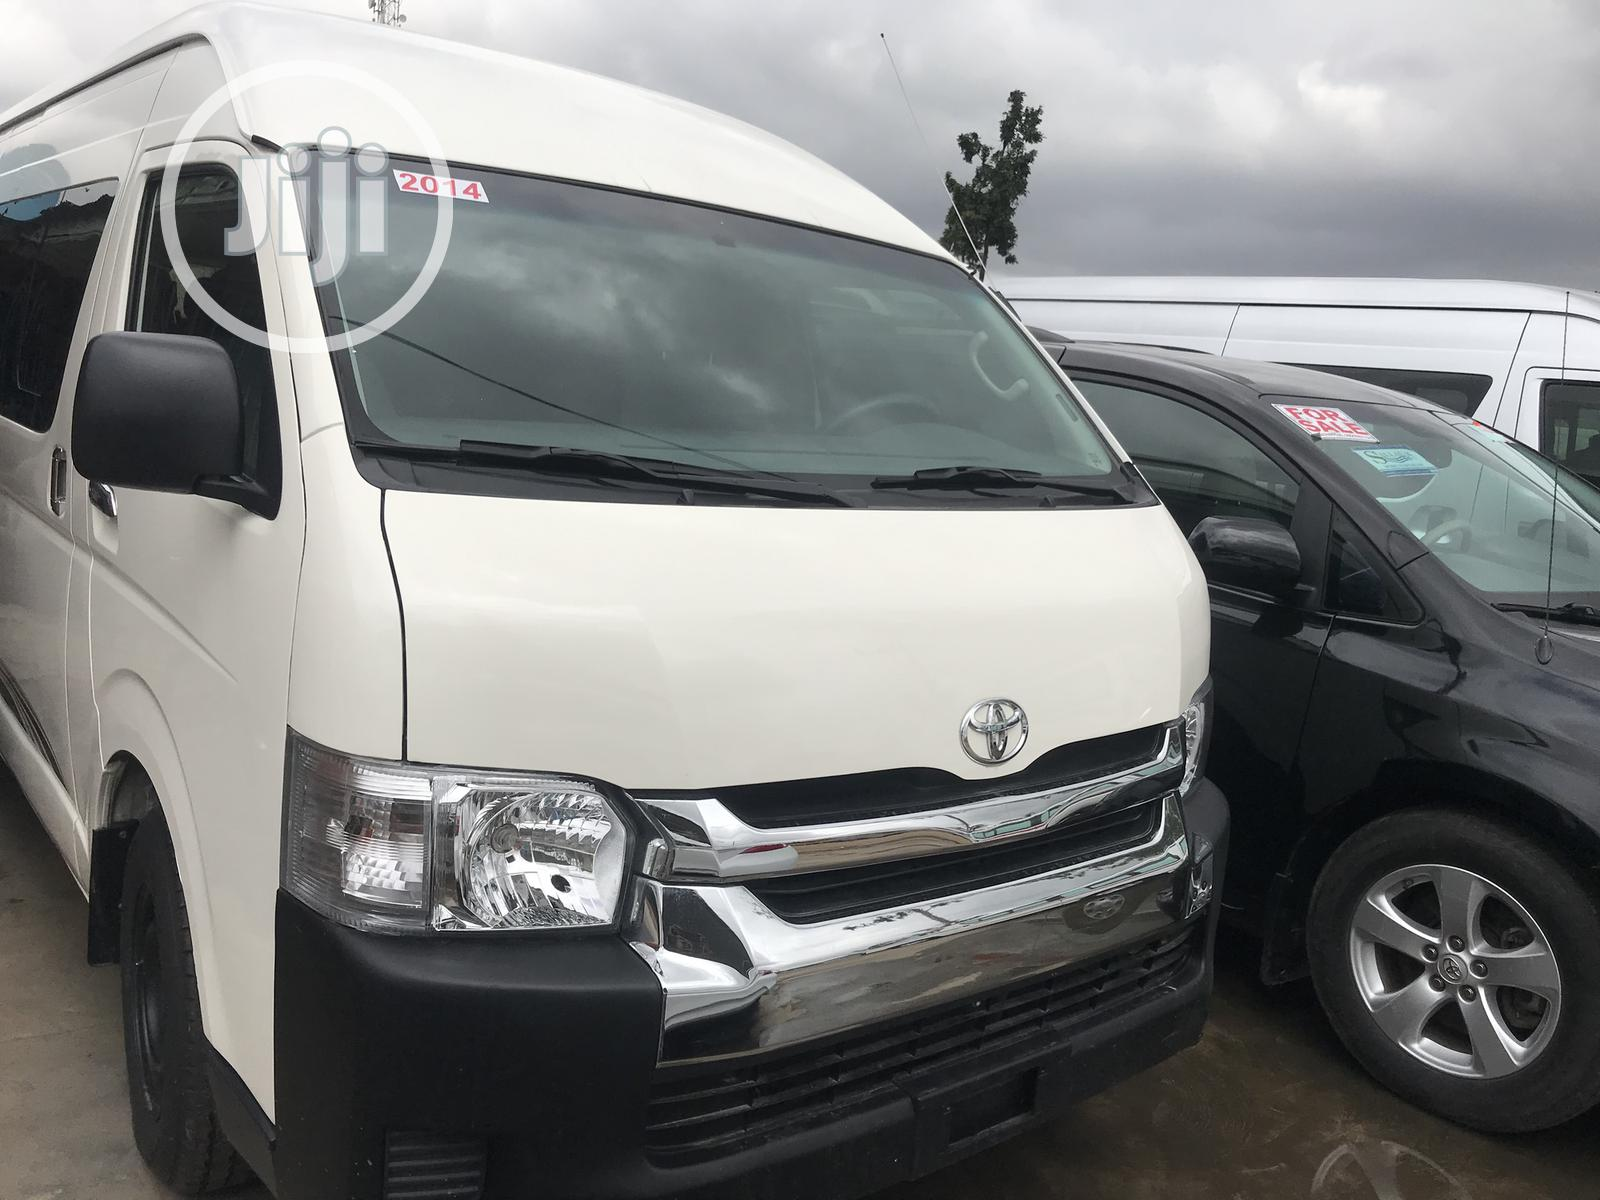 Locally Used Toyota Hiace Hummer3 2014